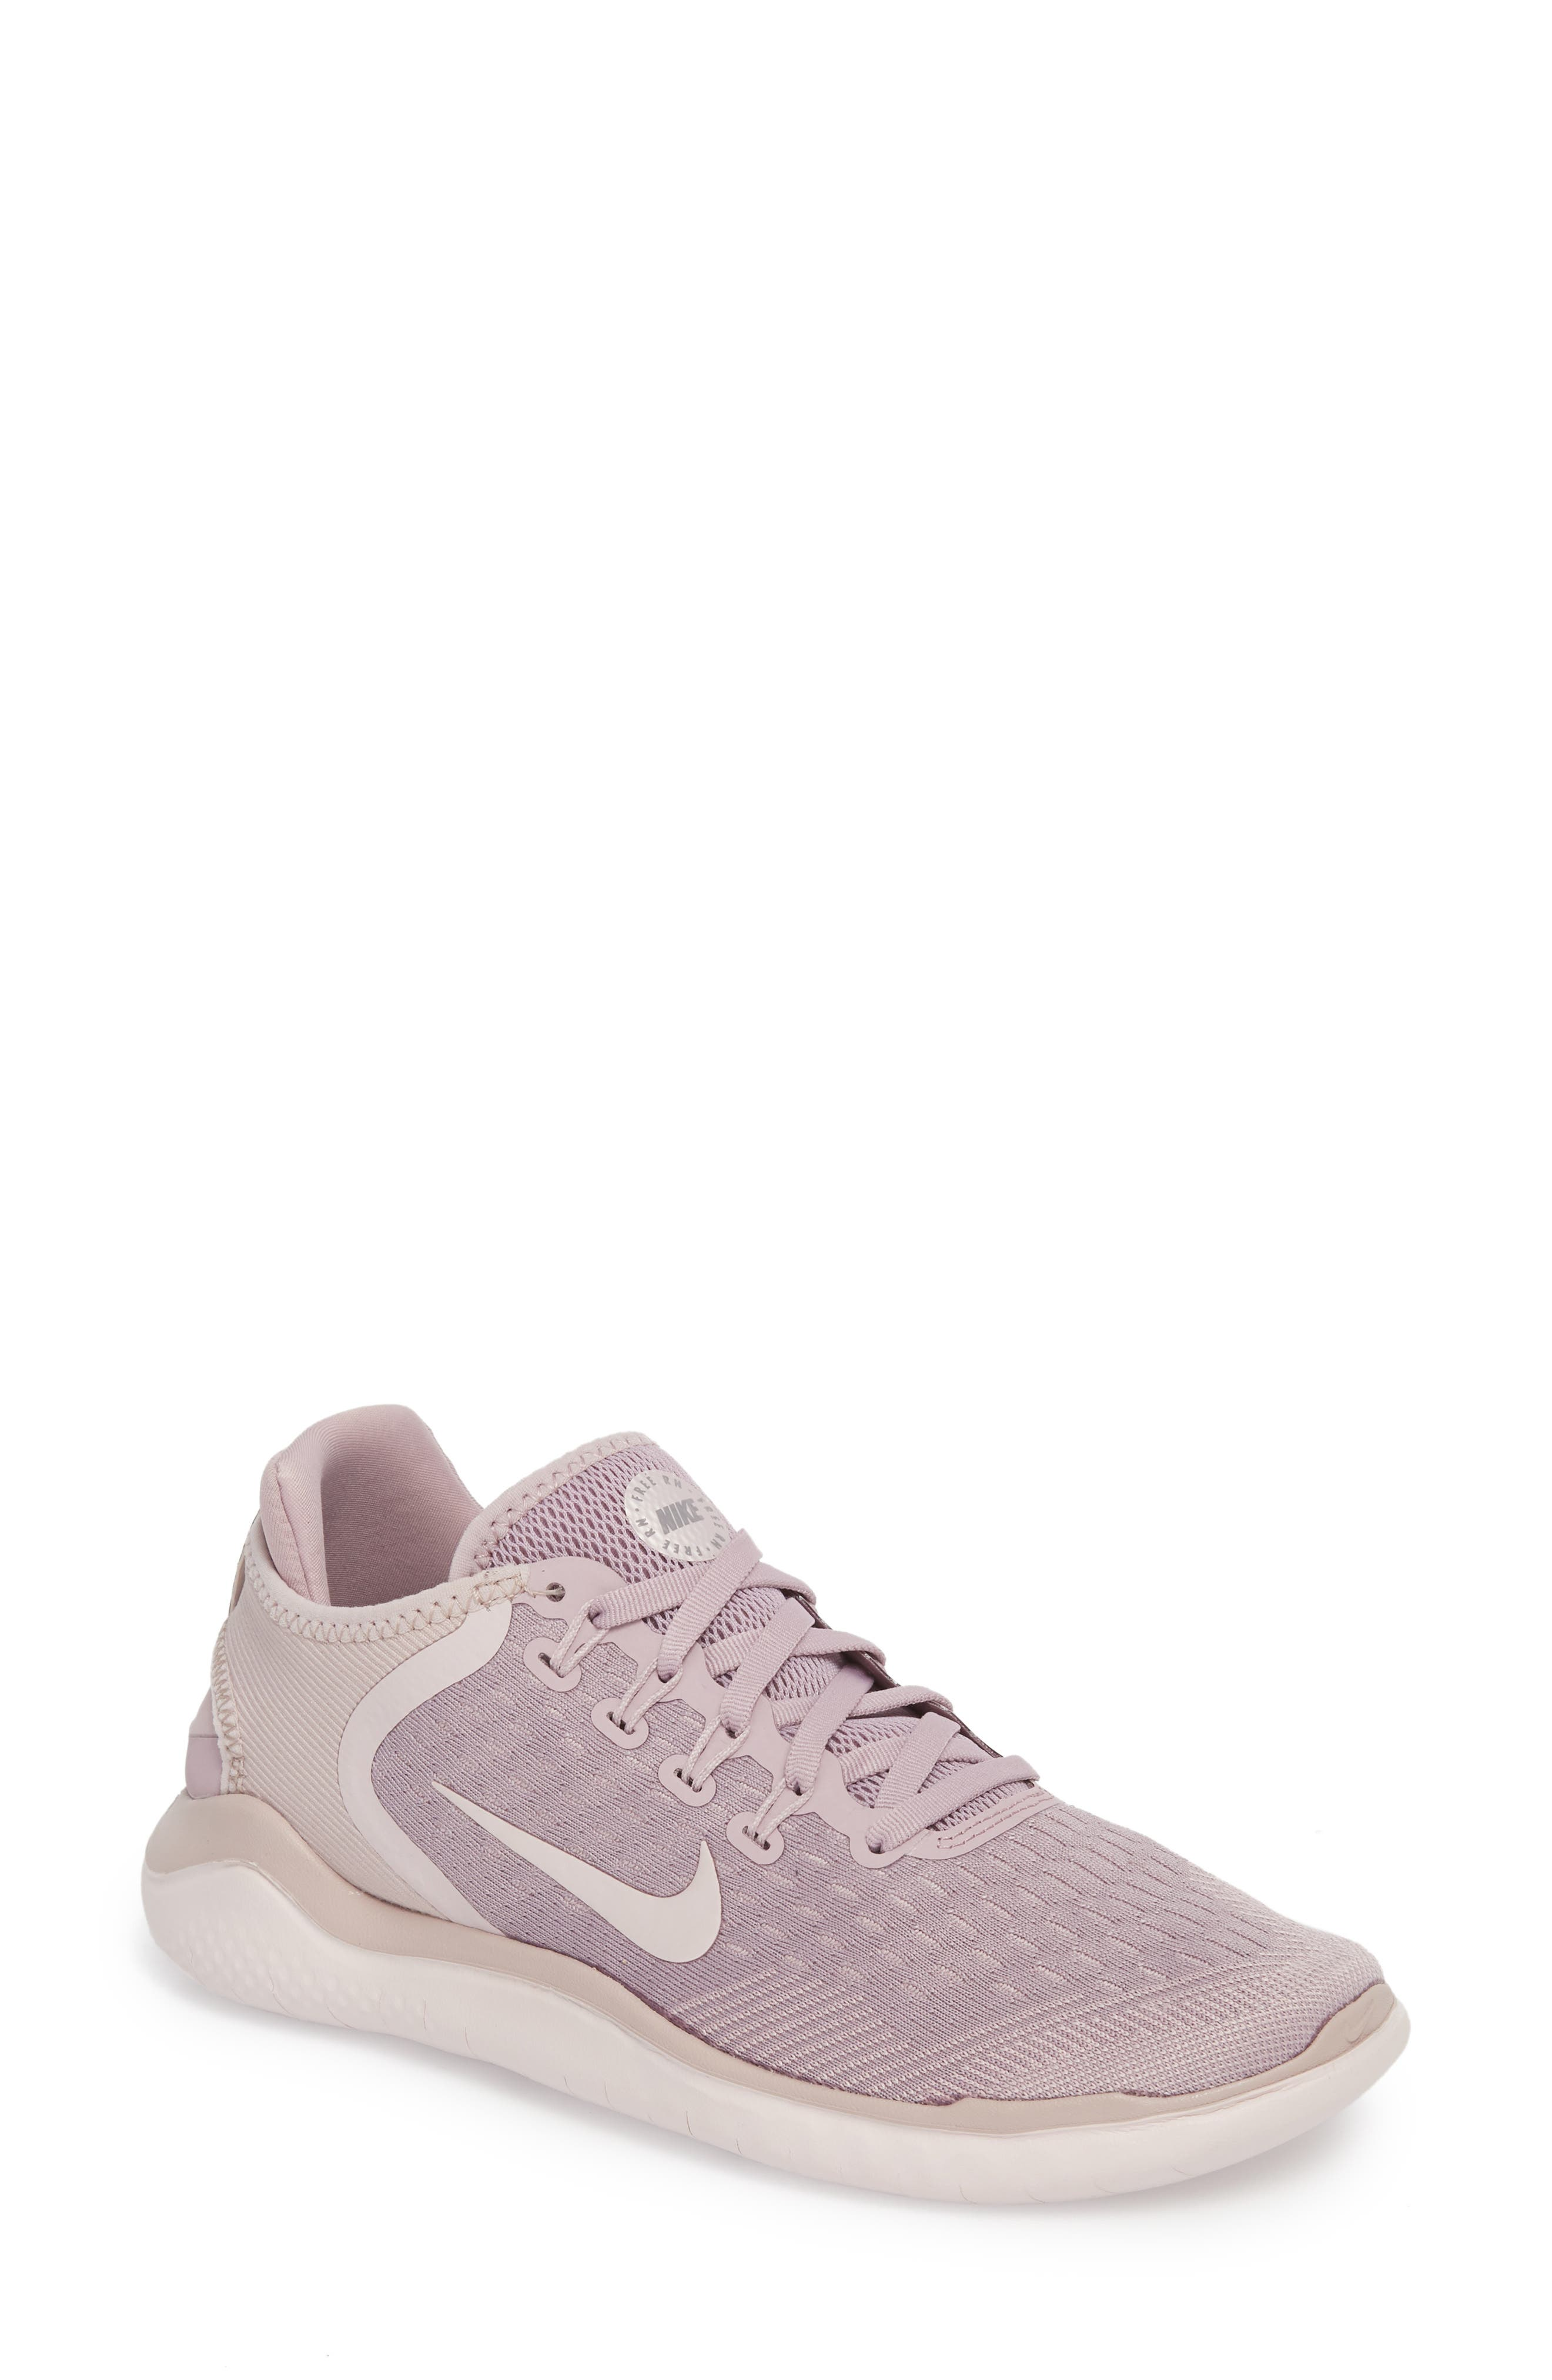 NIKE Free RN 2018 Running Shoe, Main, color, 650